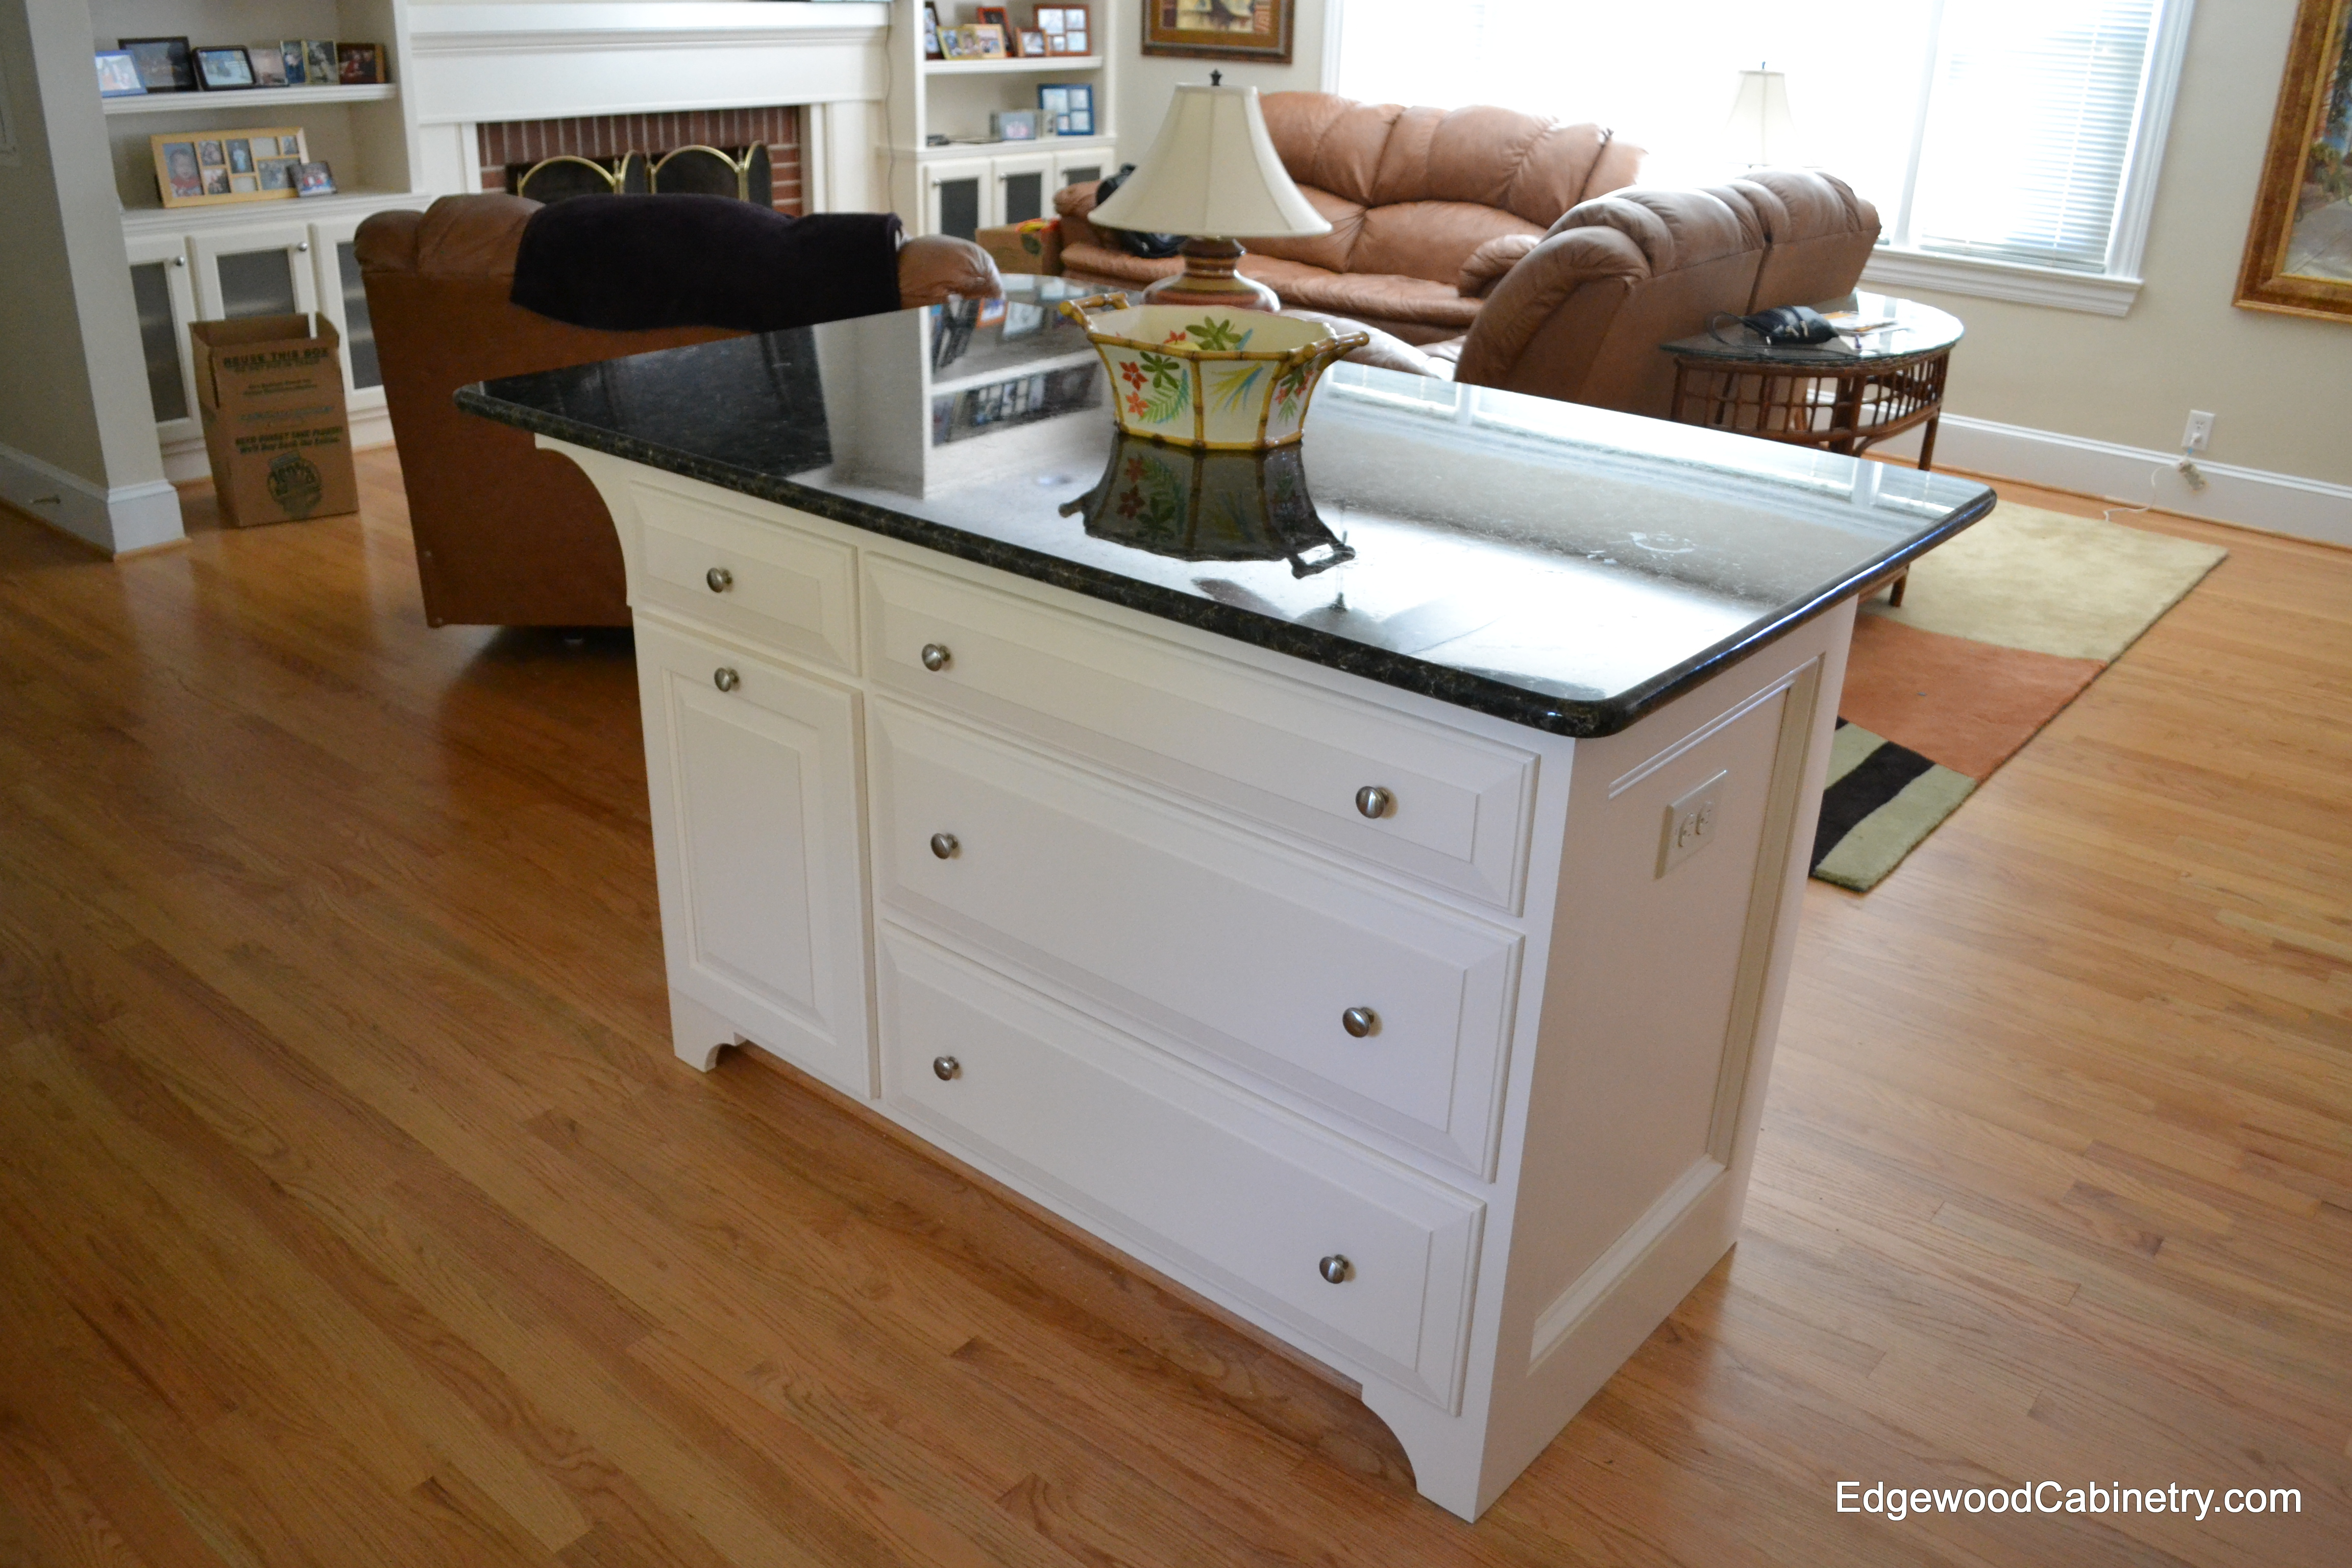 Kitchen Cabinets With Feet Cabinet Feet Aprons And Legs Edgewood Cabinetry